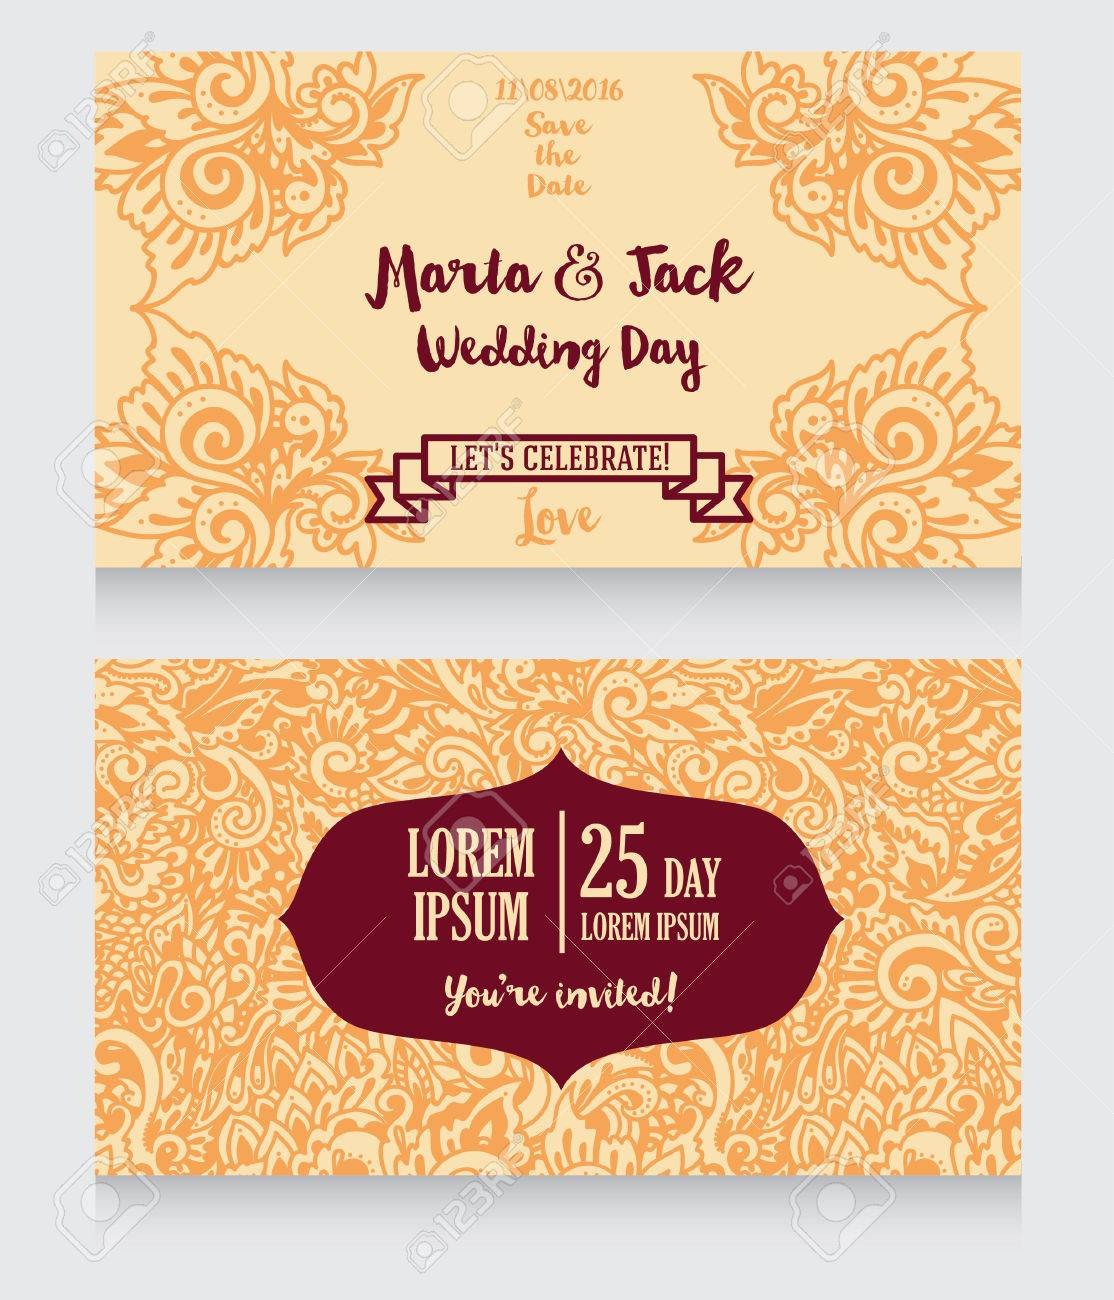 Template for wedding invitations in boho style colorful abstract banco de imagens template for wedding invitations in boho style colorful abstract ornament vector illustration stopboris Image collections